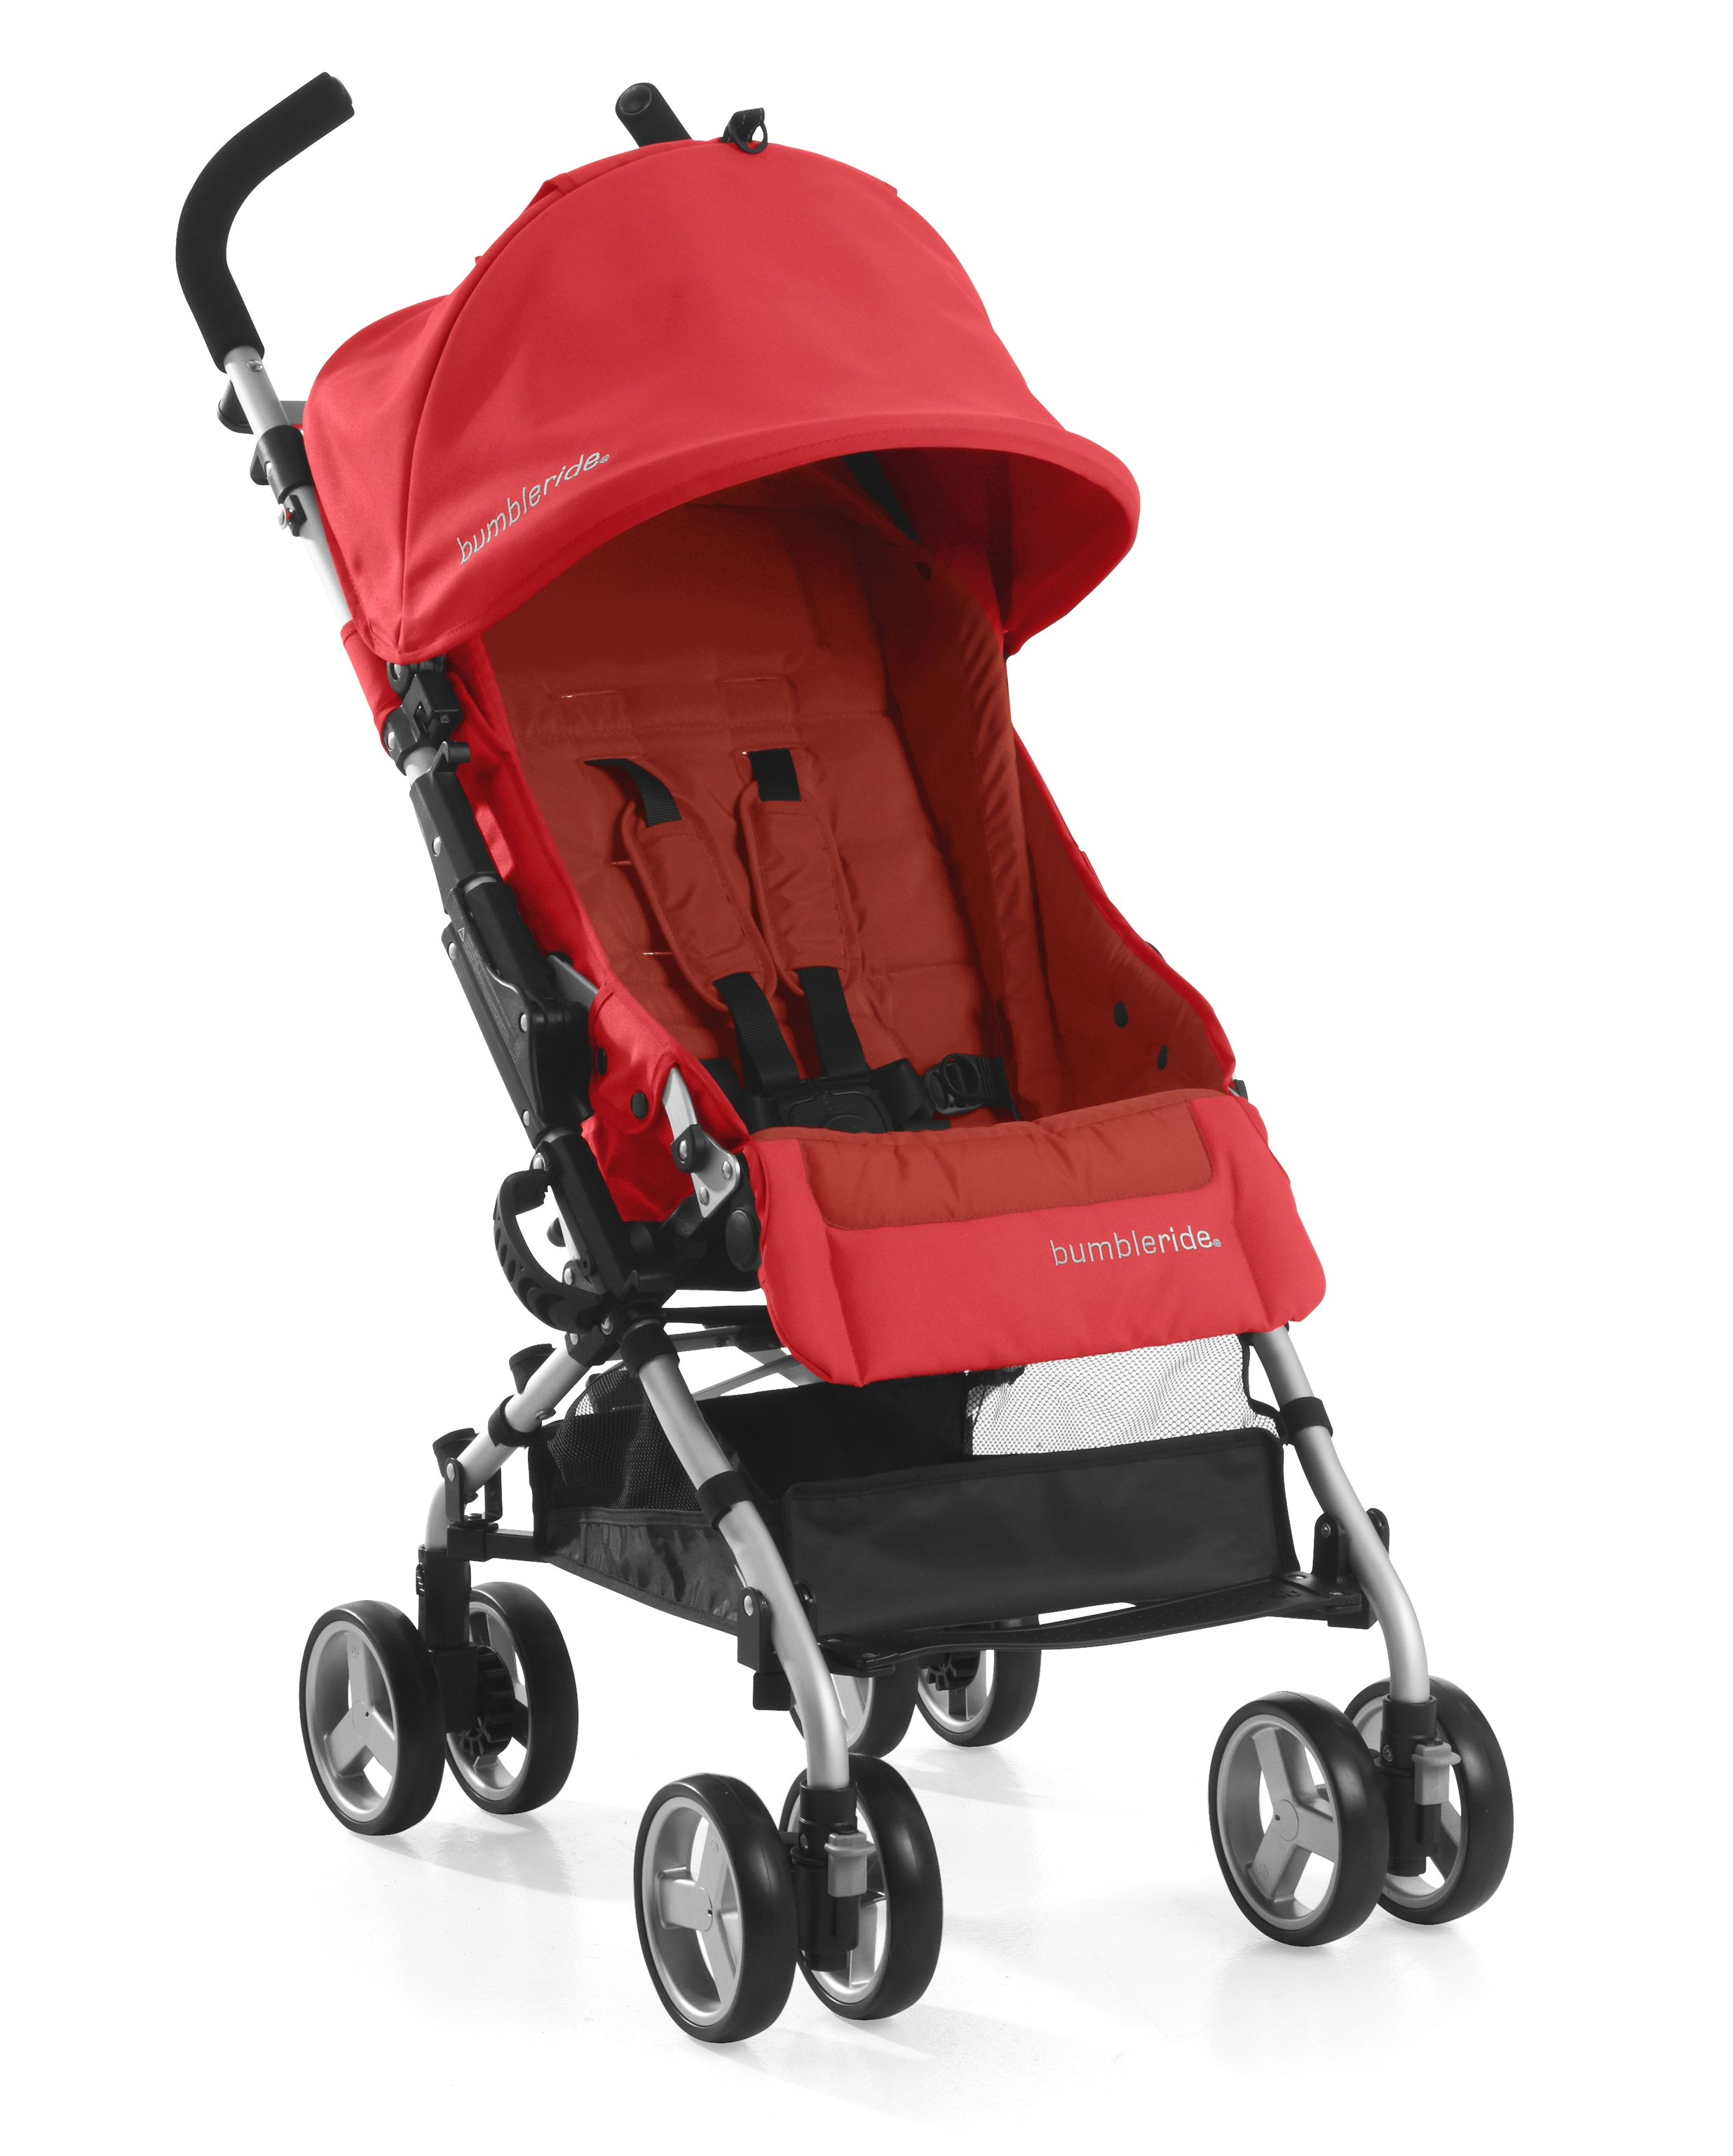 Looking for the top umbrella stroller and baby pram